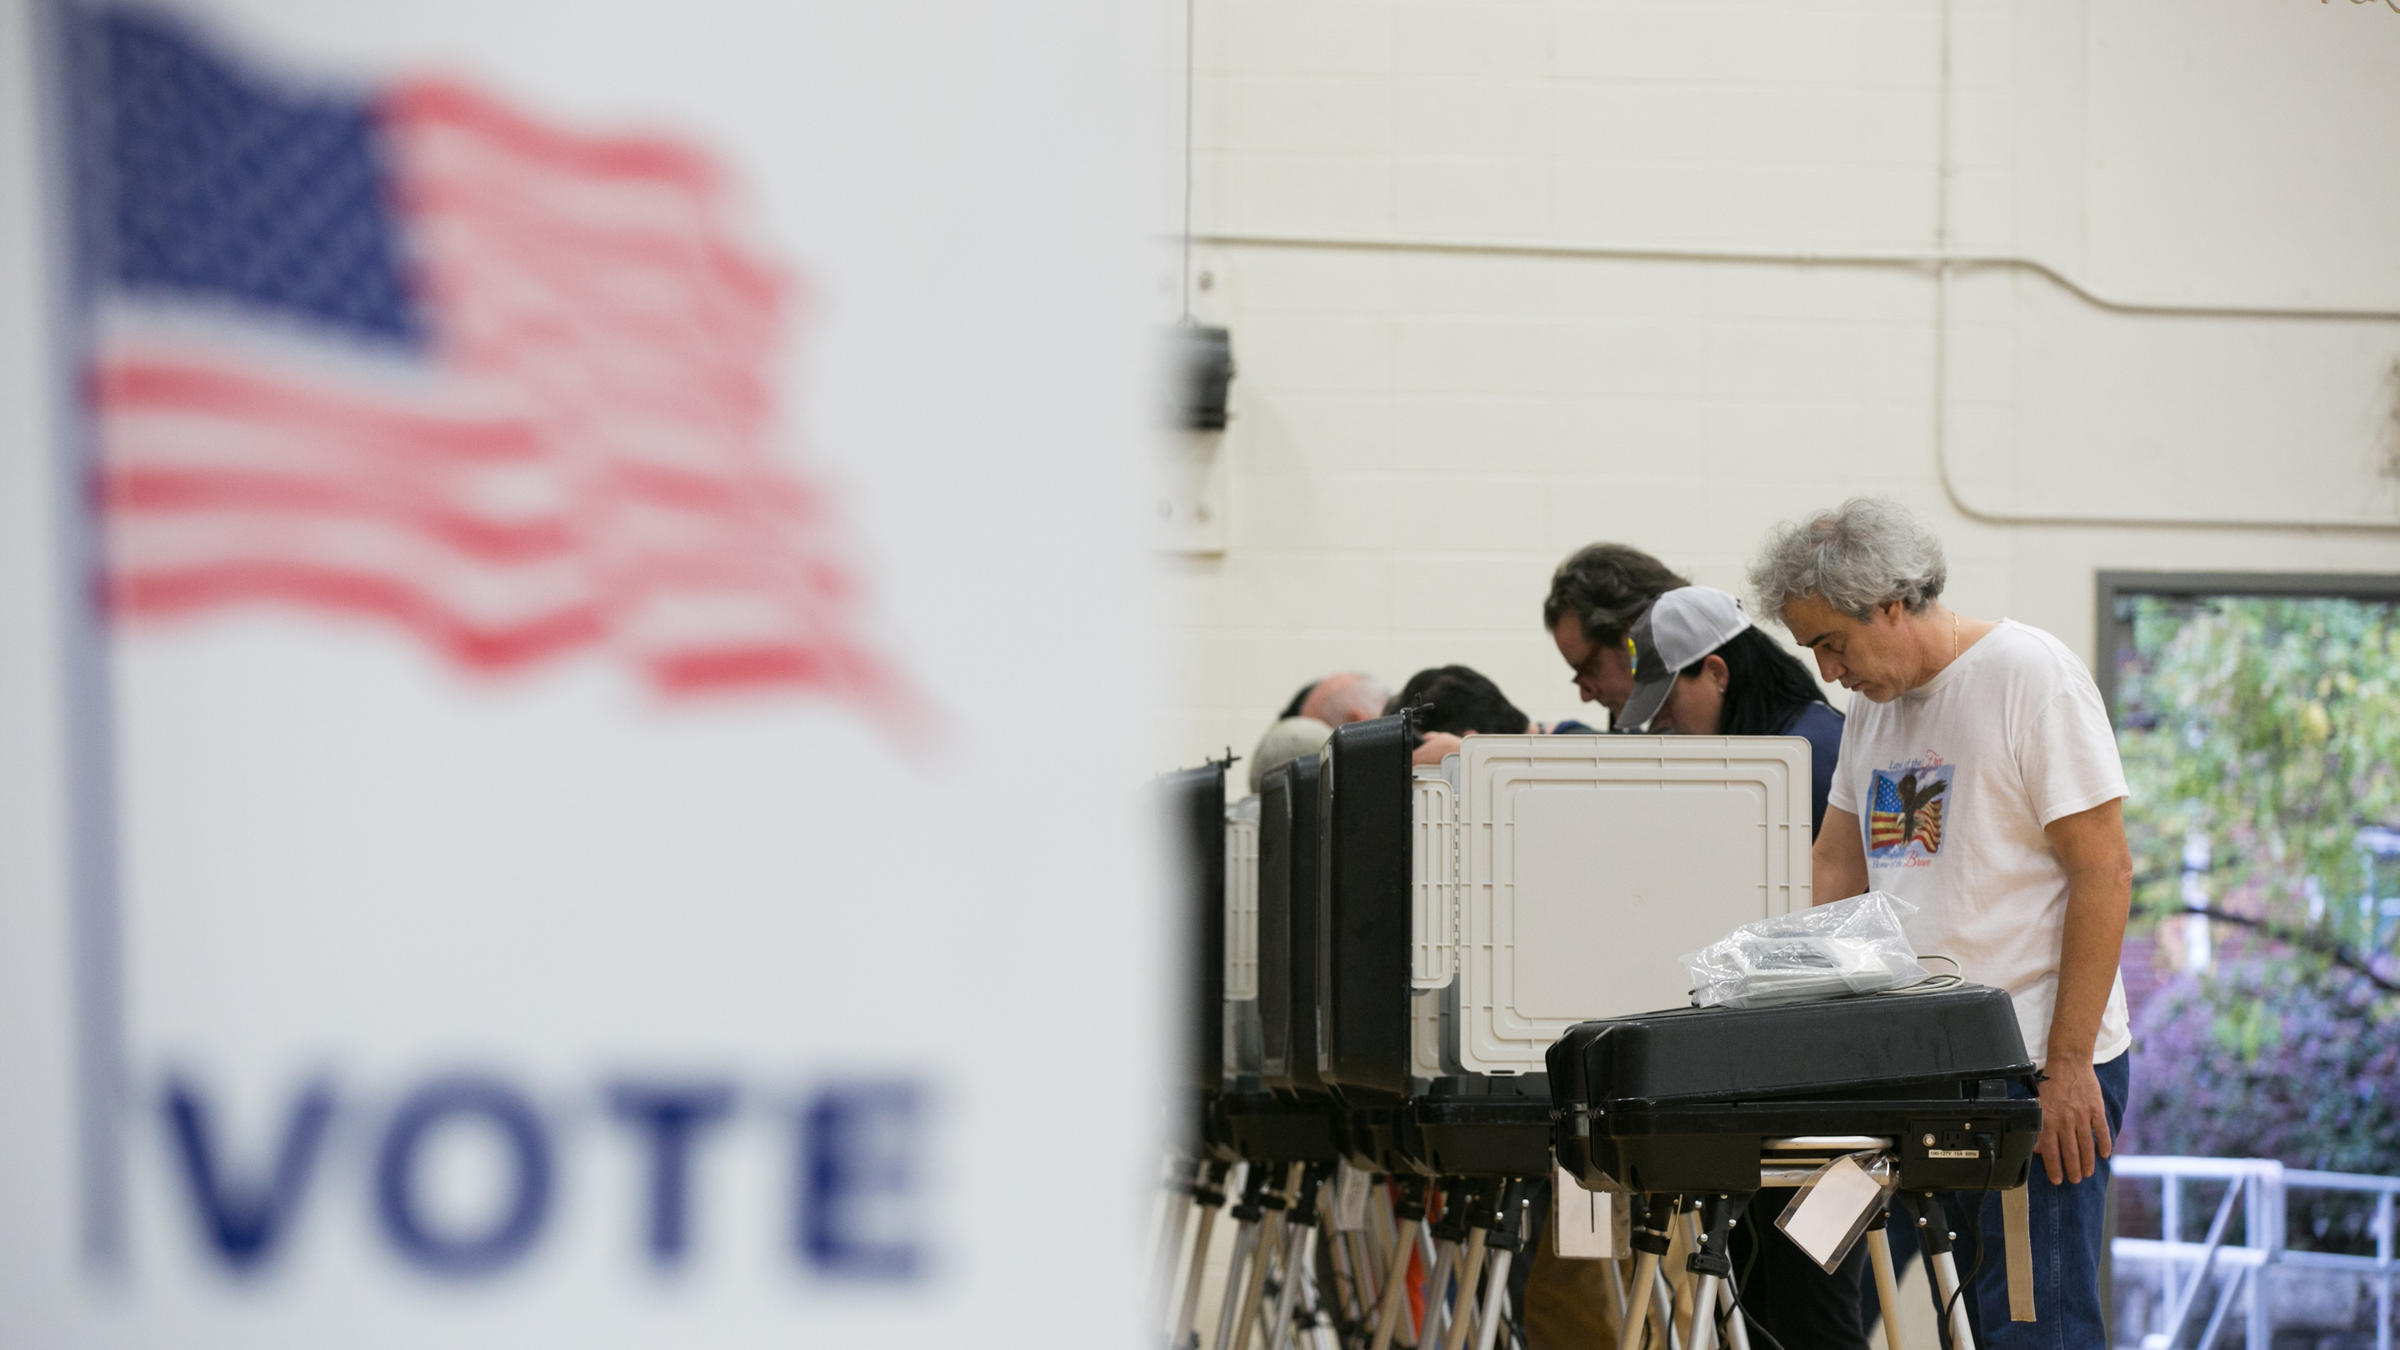 Cyber Experts Warn Of Vulnerabilities Facing 2020 Election